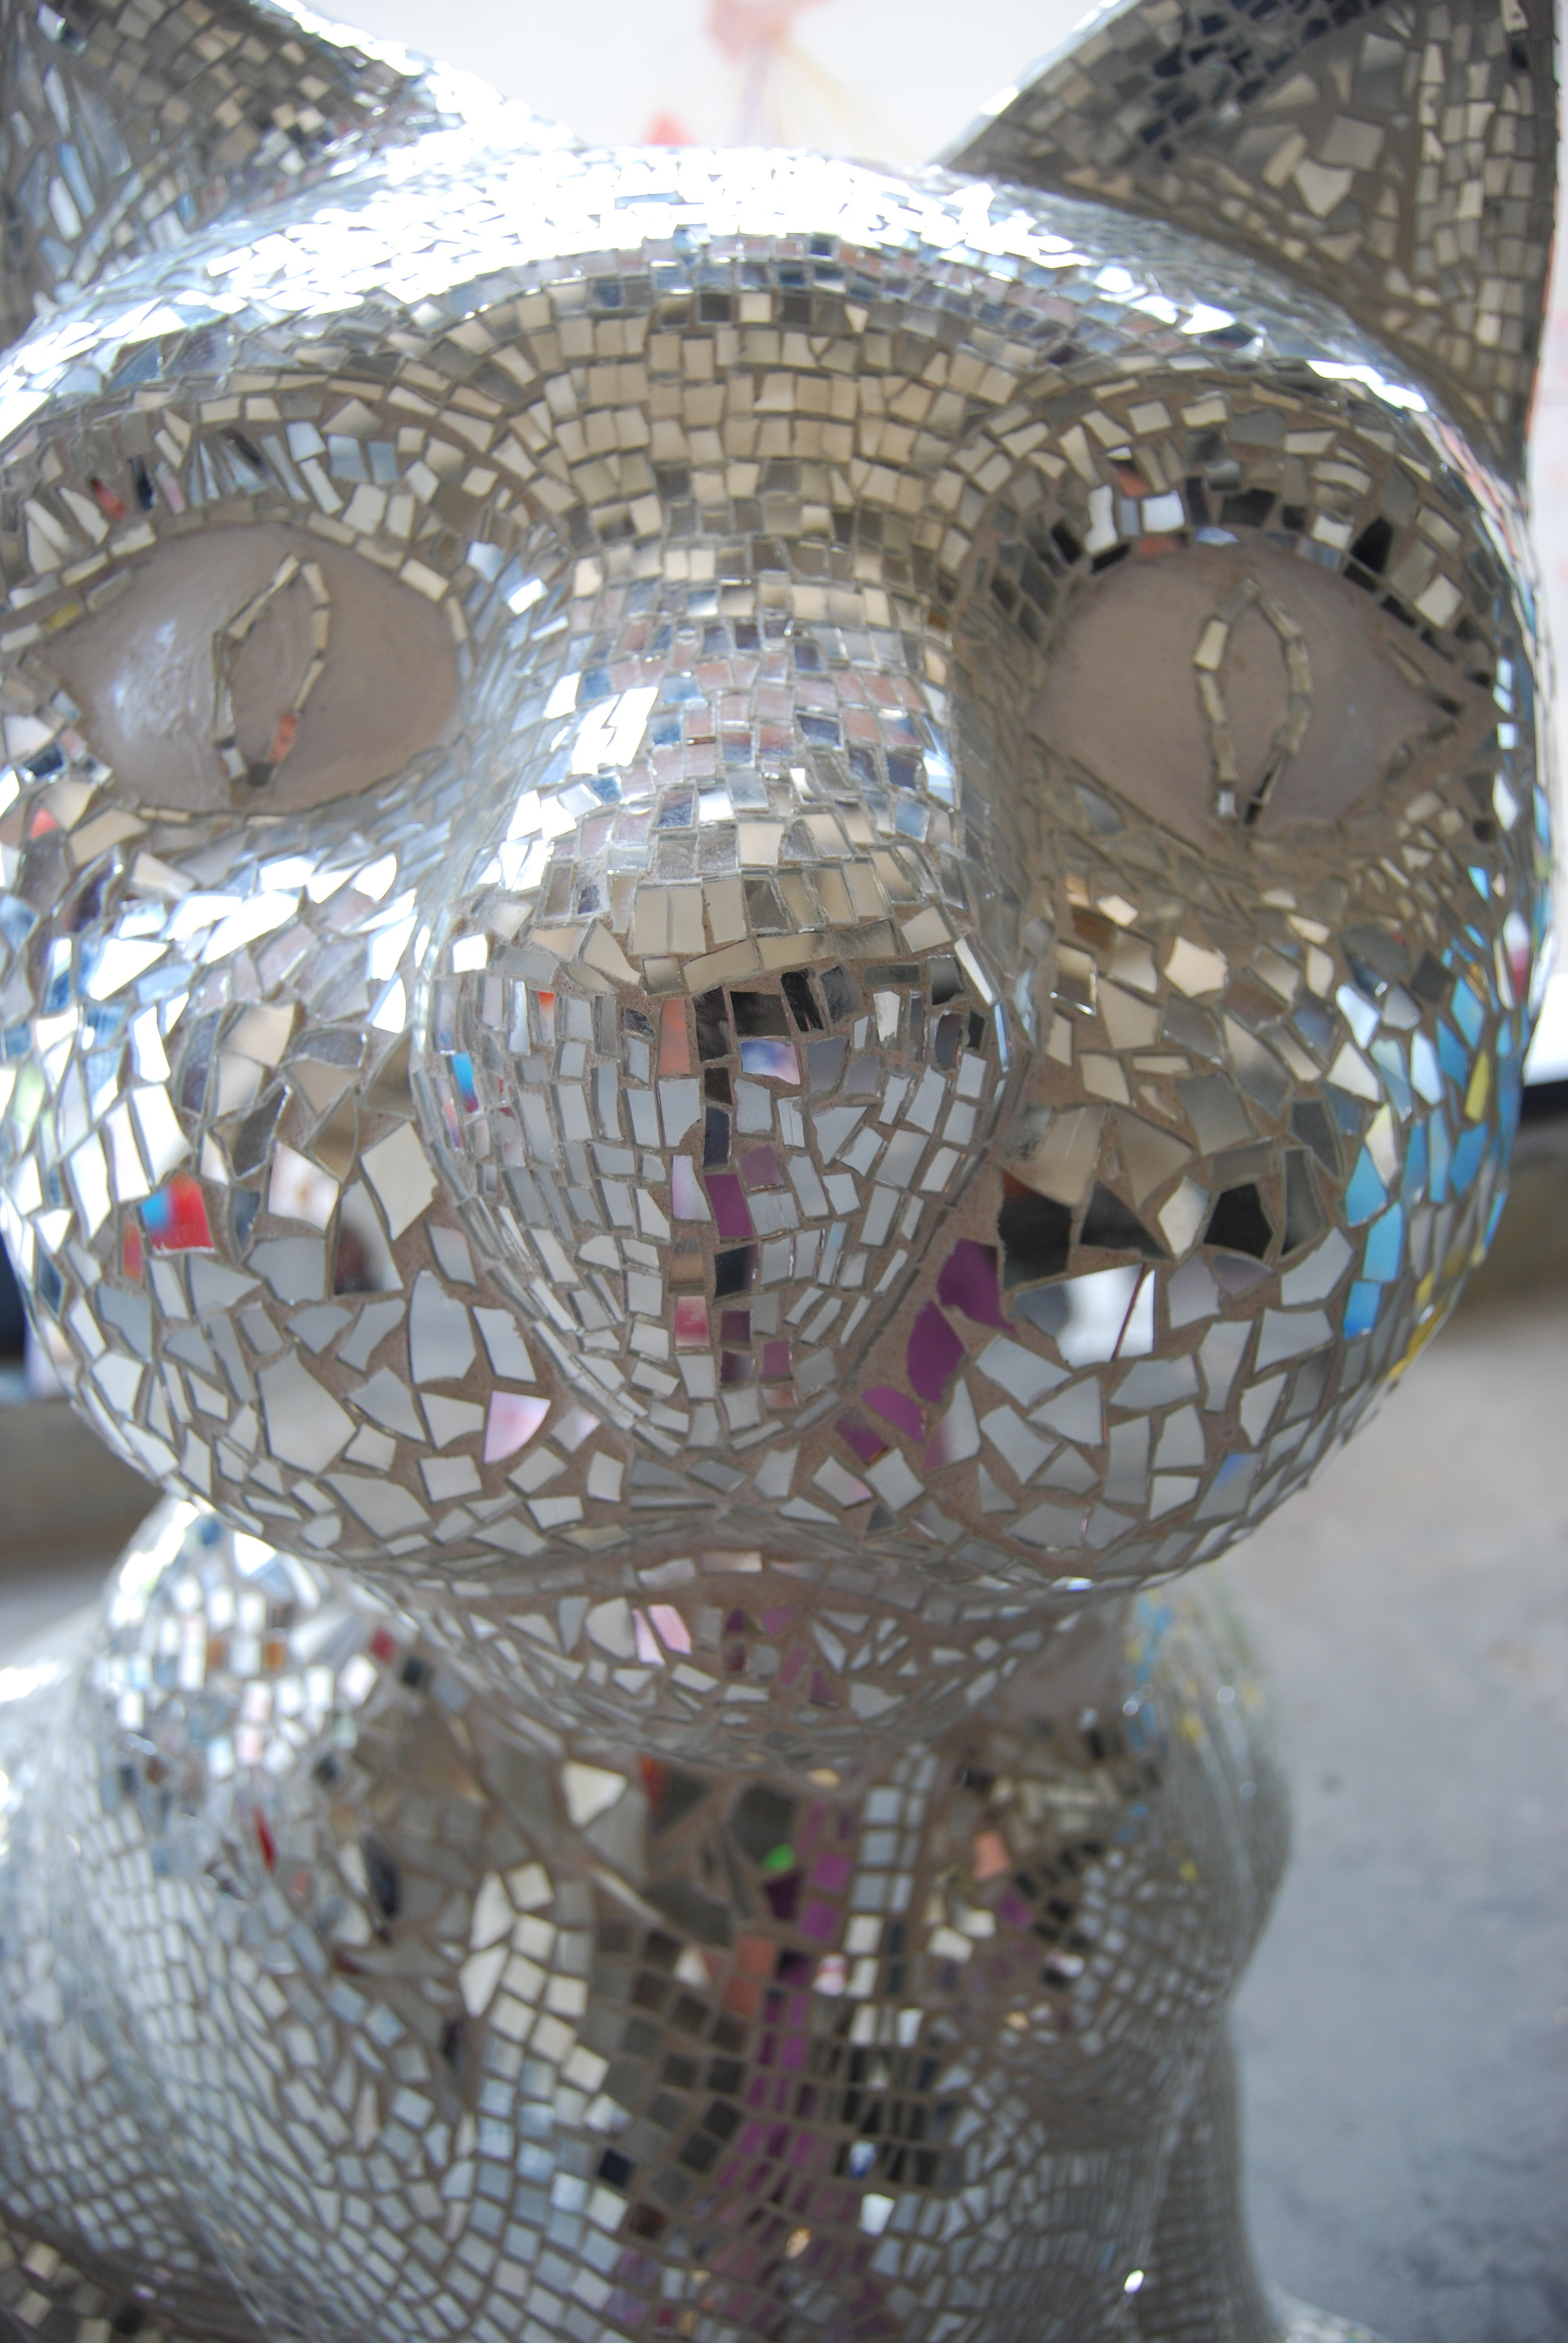 """InCatdescent Zeus"" Hand cut glass mirror mosaic cat sculpture by Shelita Birchett Benash. 5'H x 2.5'W x 4'L, 2010. Stamford Downtown Art in Public Places. ""It's Reigning Cats and Dogs"""